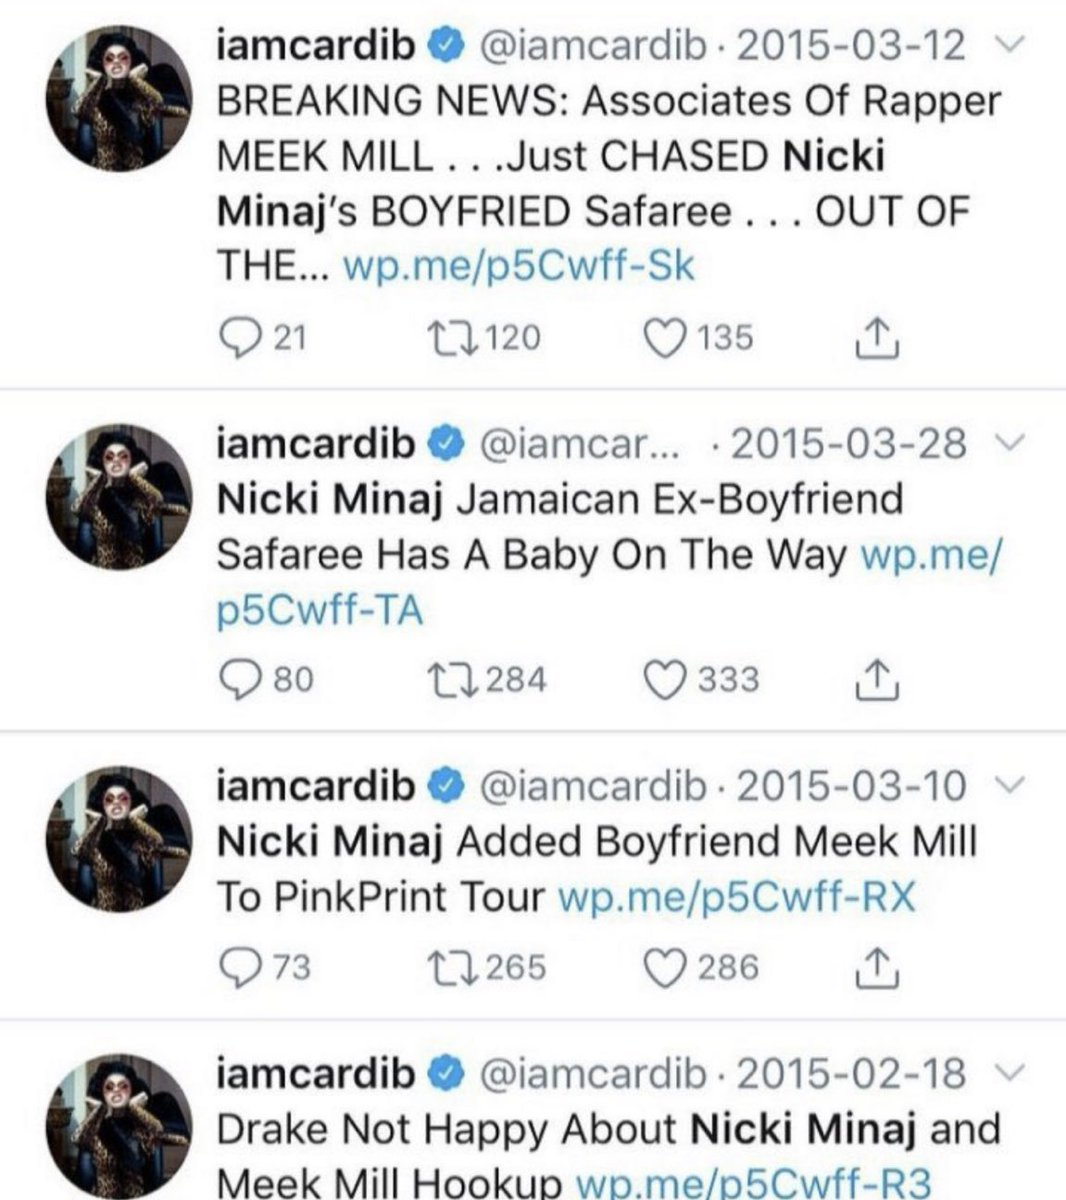 she was a whole nicki update account 😭